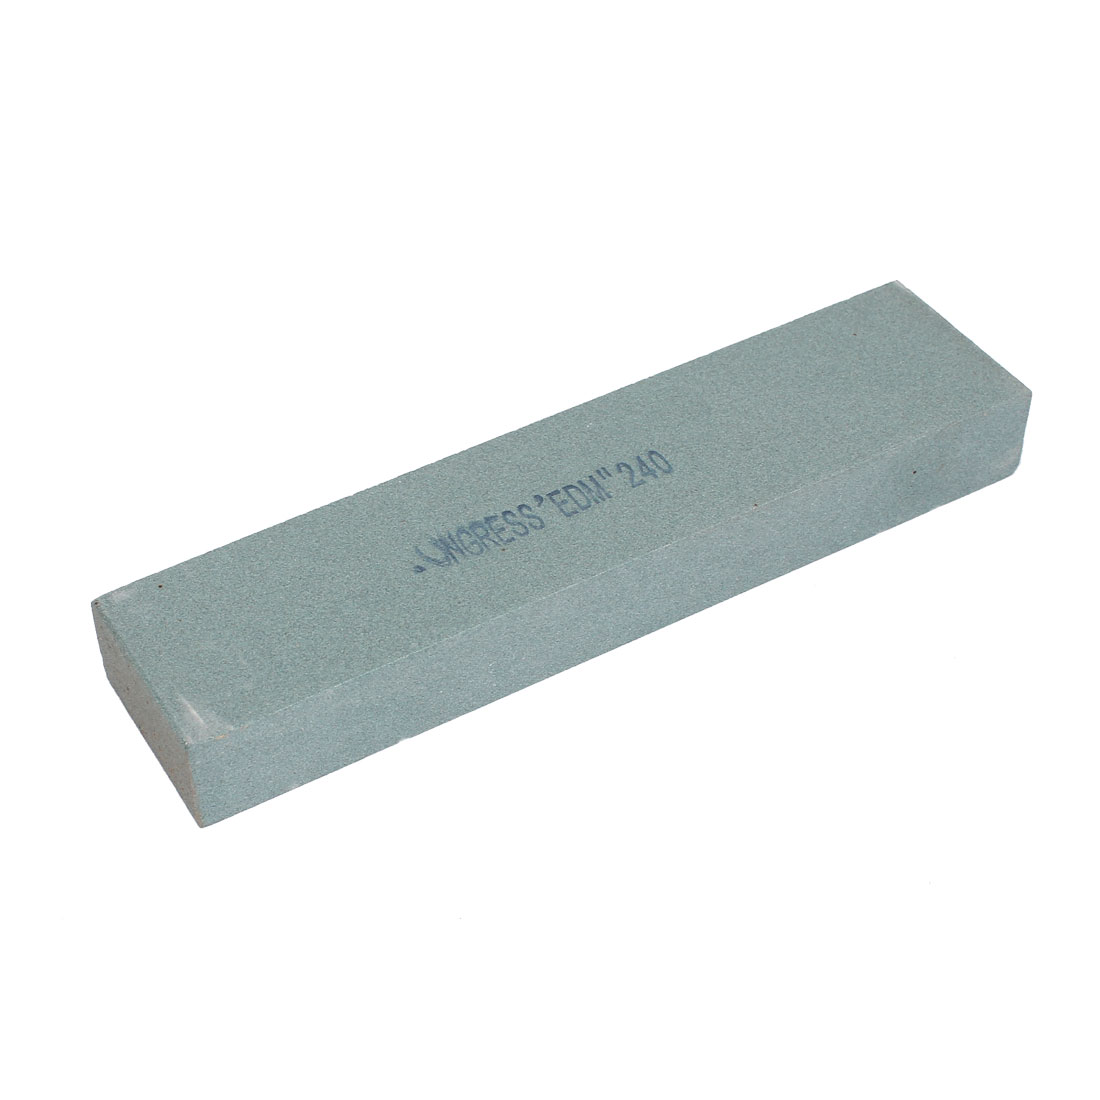 Grit 240# 200x50x25mm Cyan Abrasives Sharpening Polisher Oil Stone Whetstone